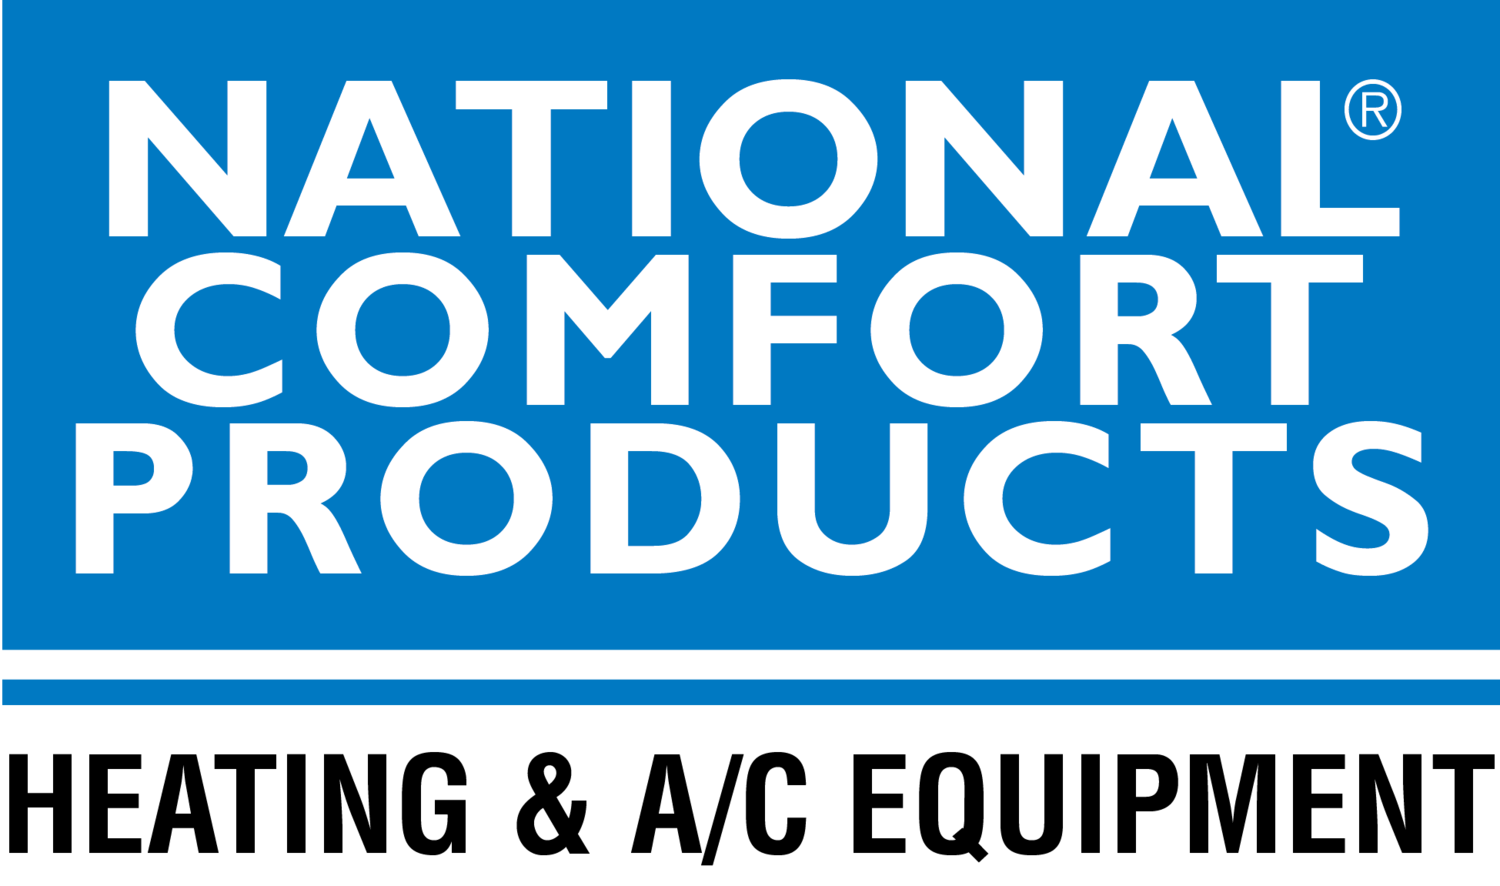 National Comfort Products | Thru-the-Wall Heating and Air Conditioning